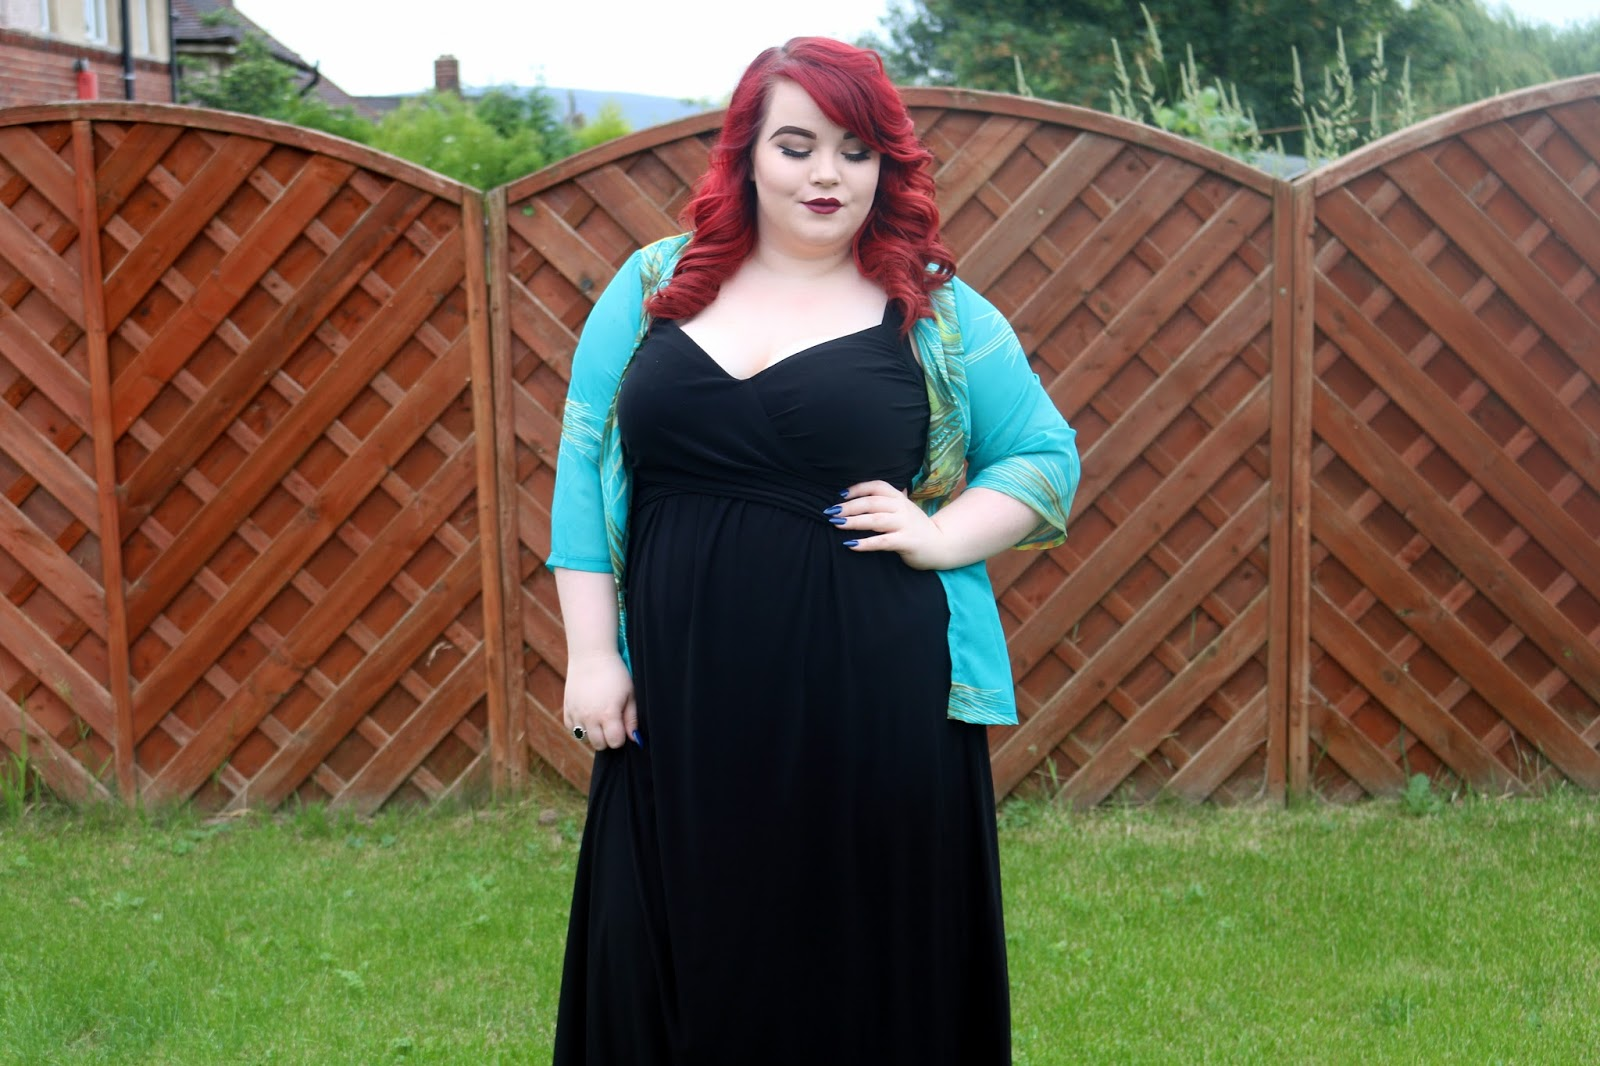 Plus Size Clothing Brand Polly Grace, She Might Be Loved